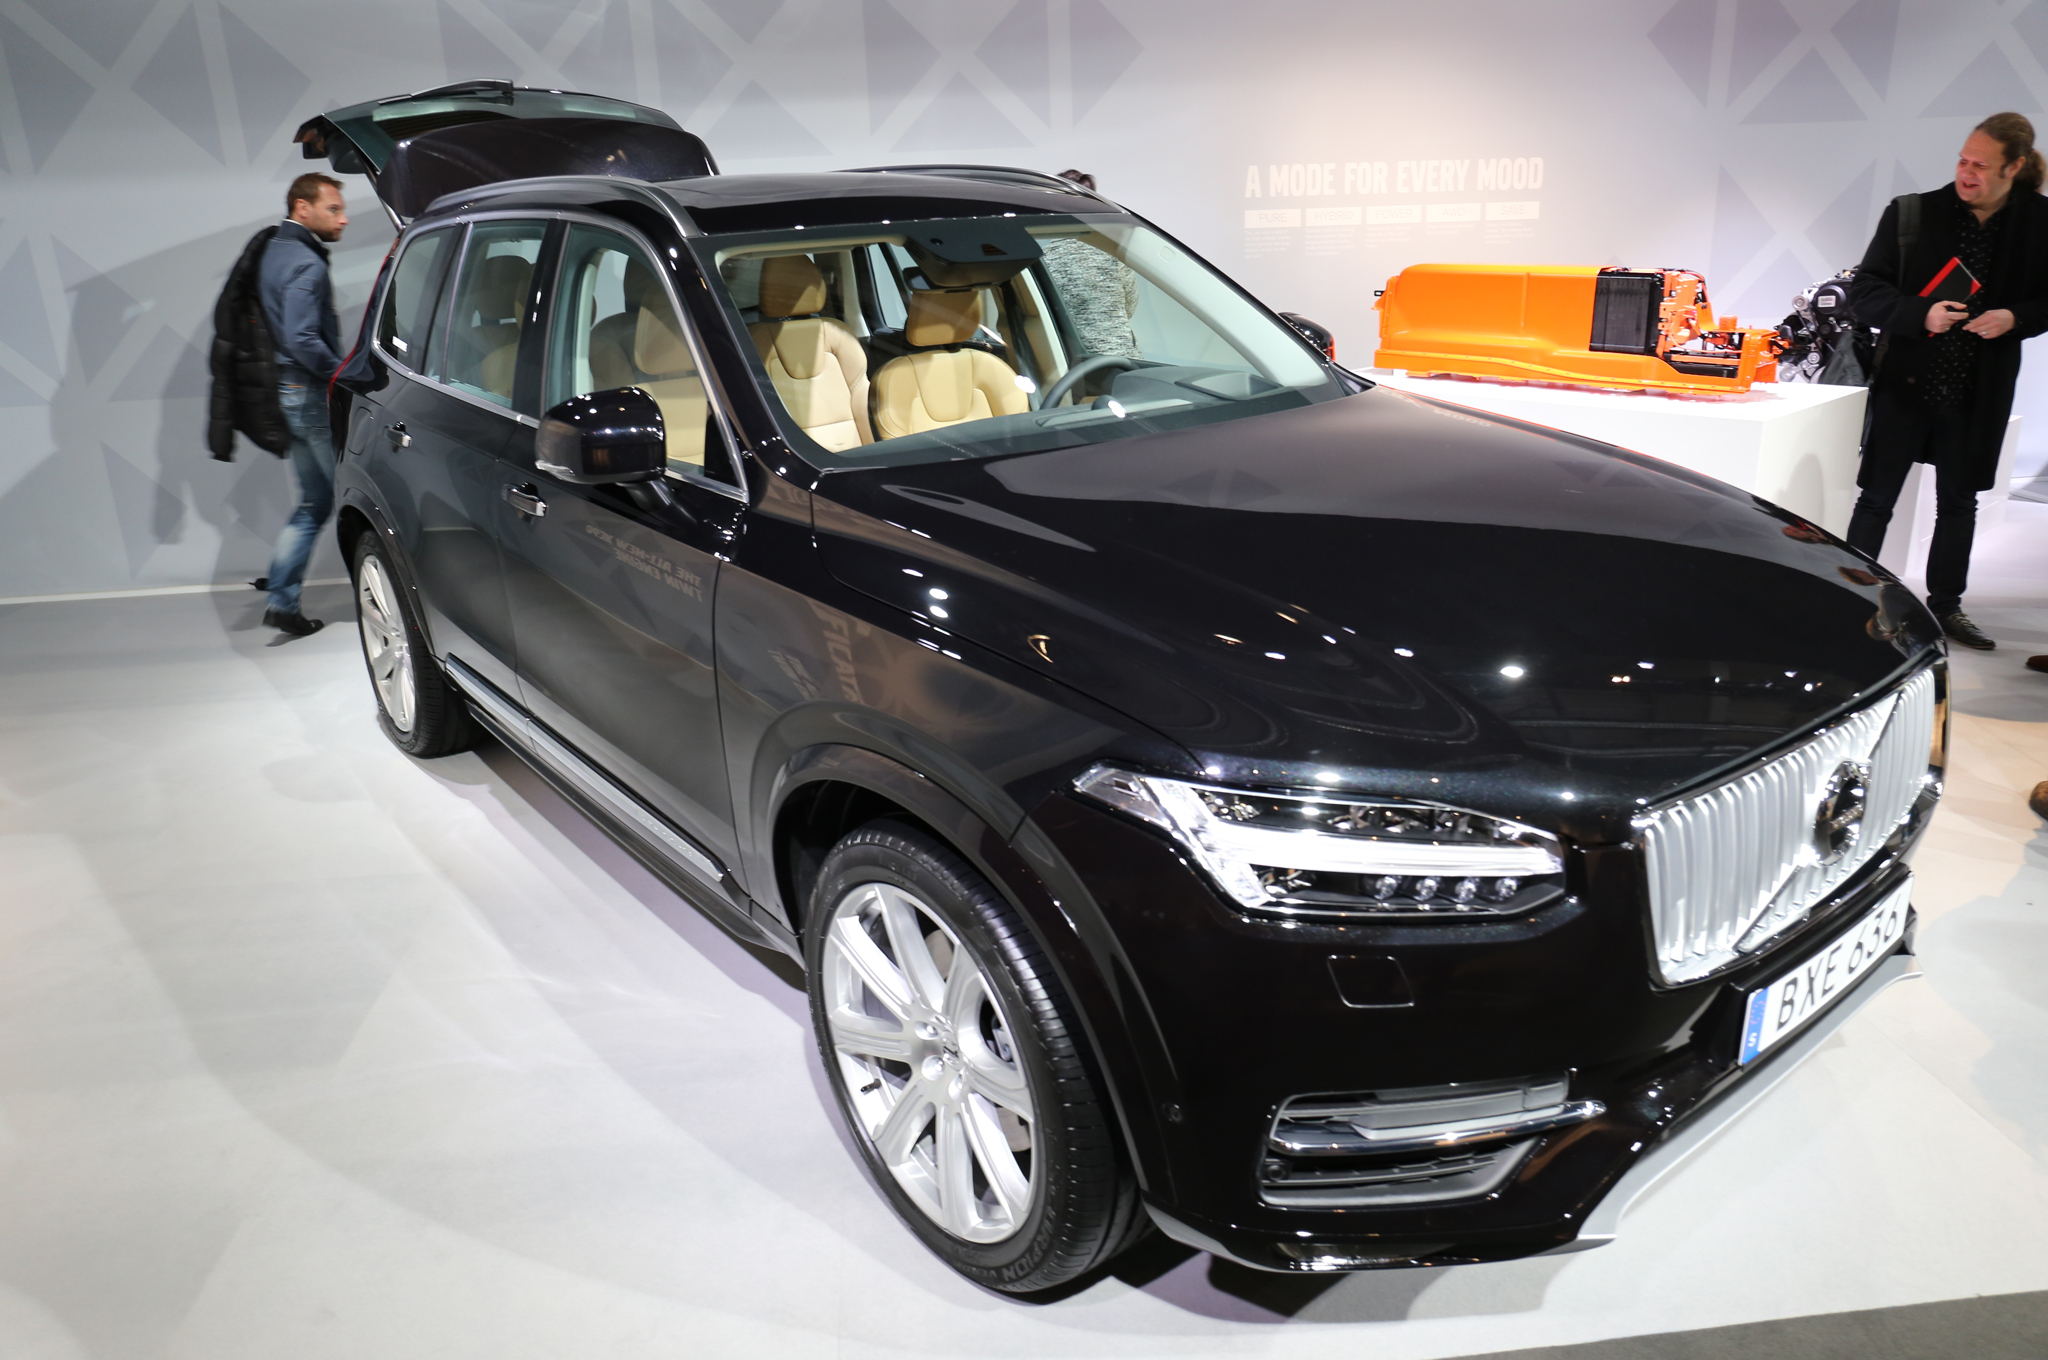 2016 Volvo Xc90 T8 Auto Show Preview (Photo 9 of 18)